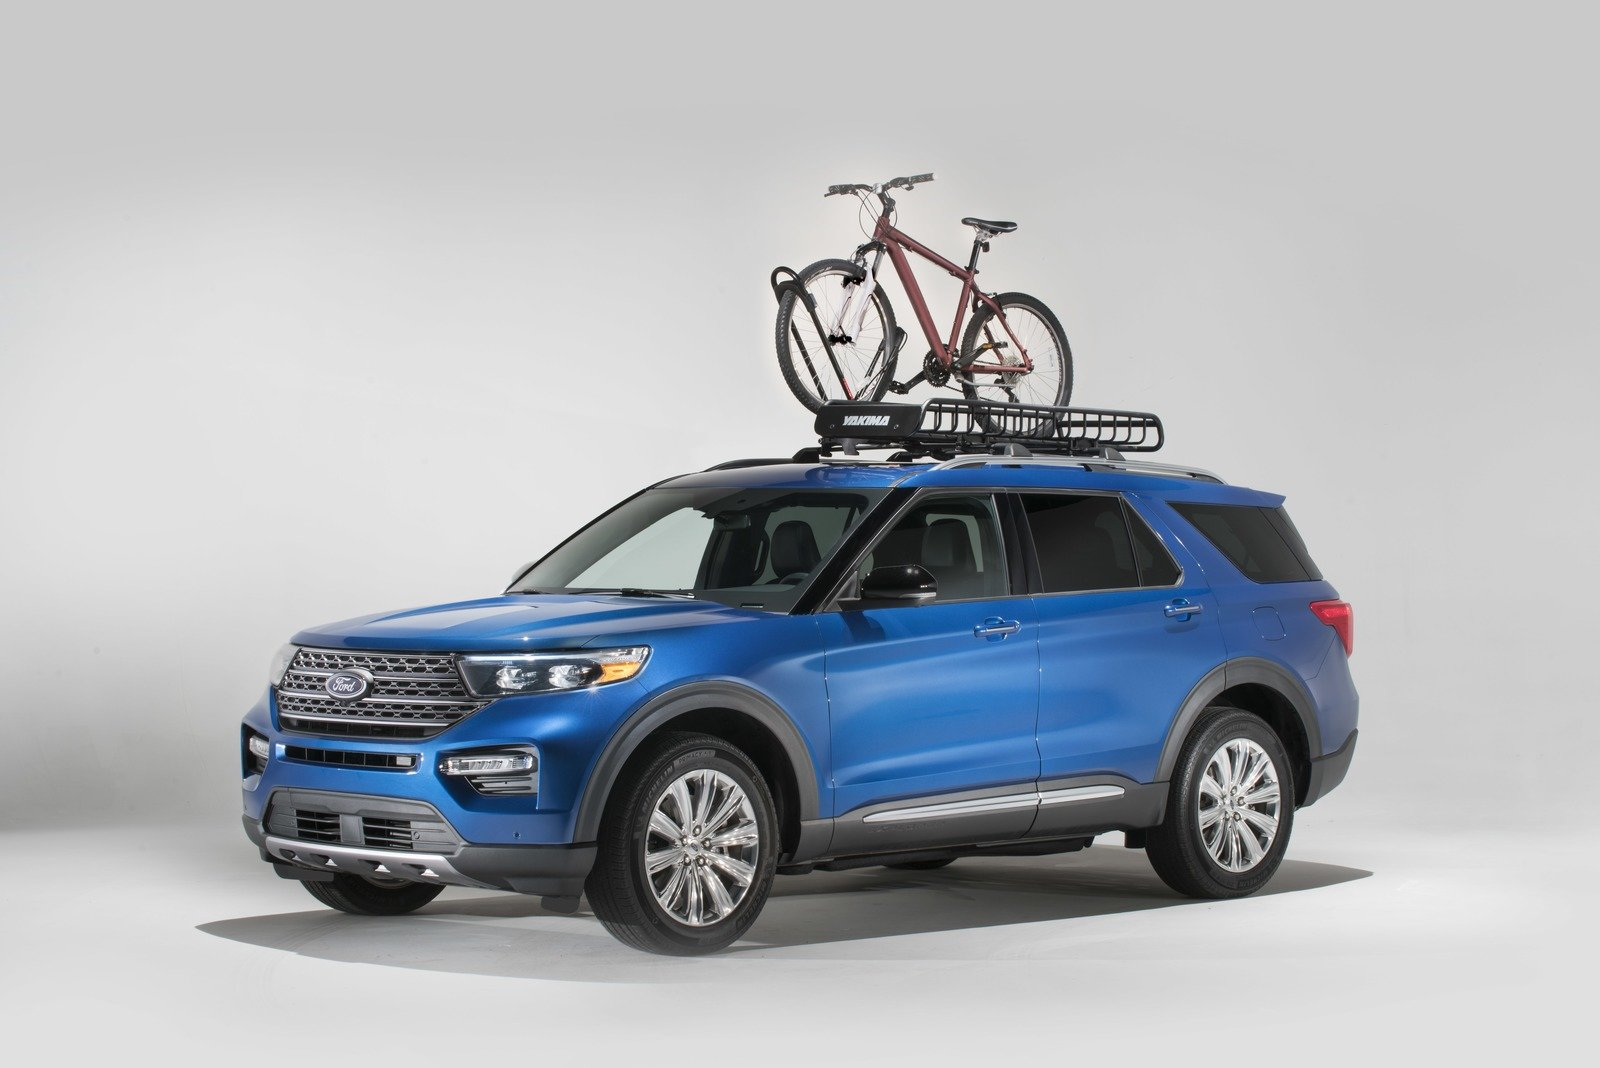 2020 Ford Explorer Gets Yakima Accessories For Outdoorsy